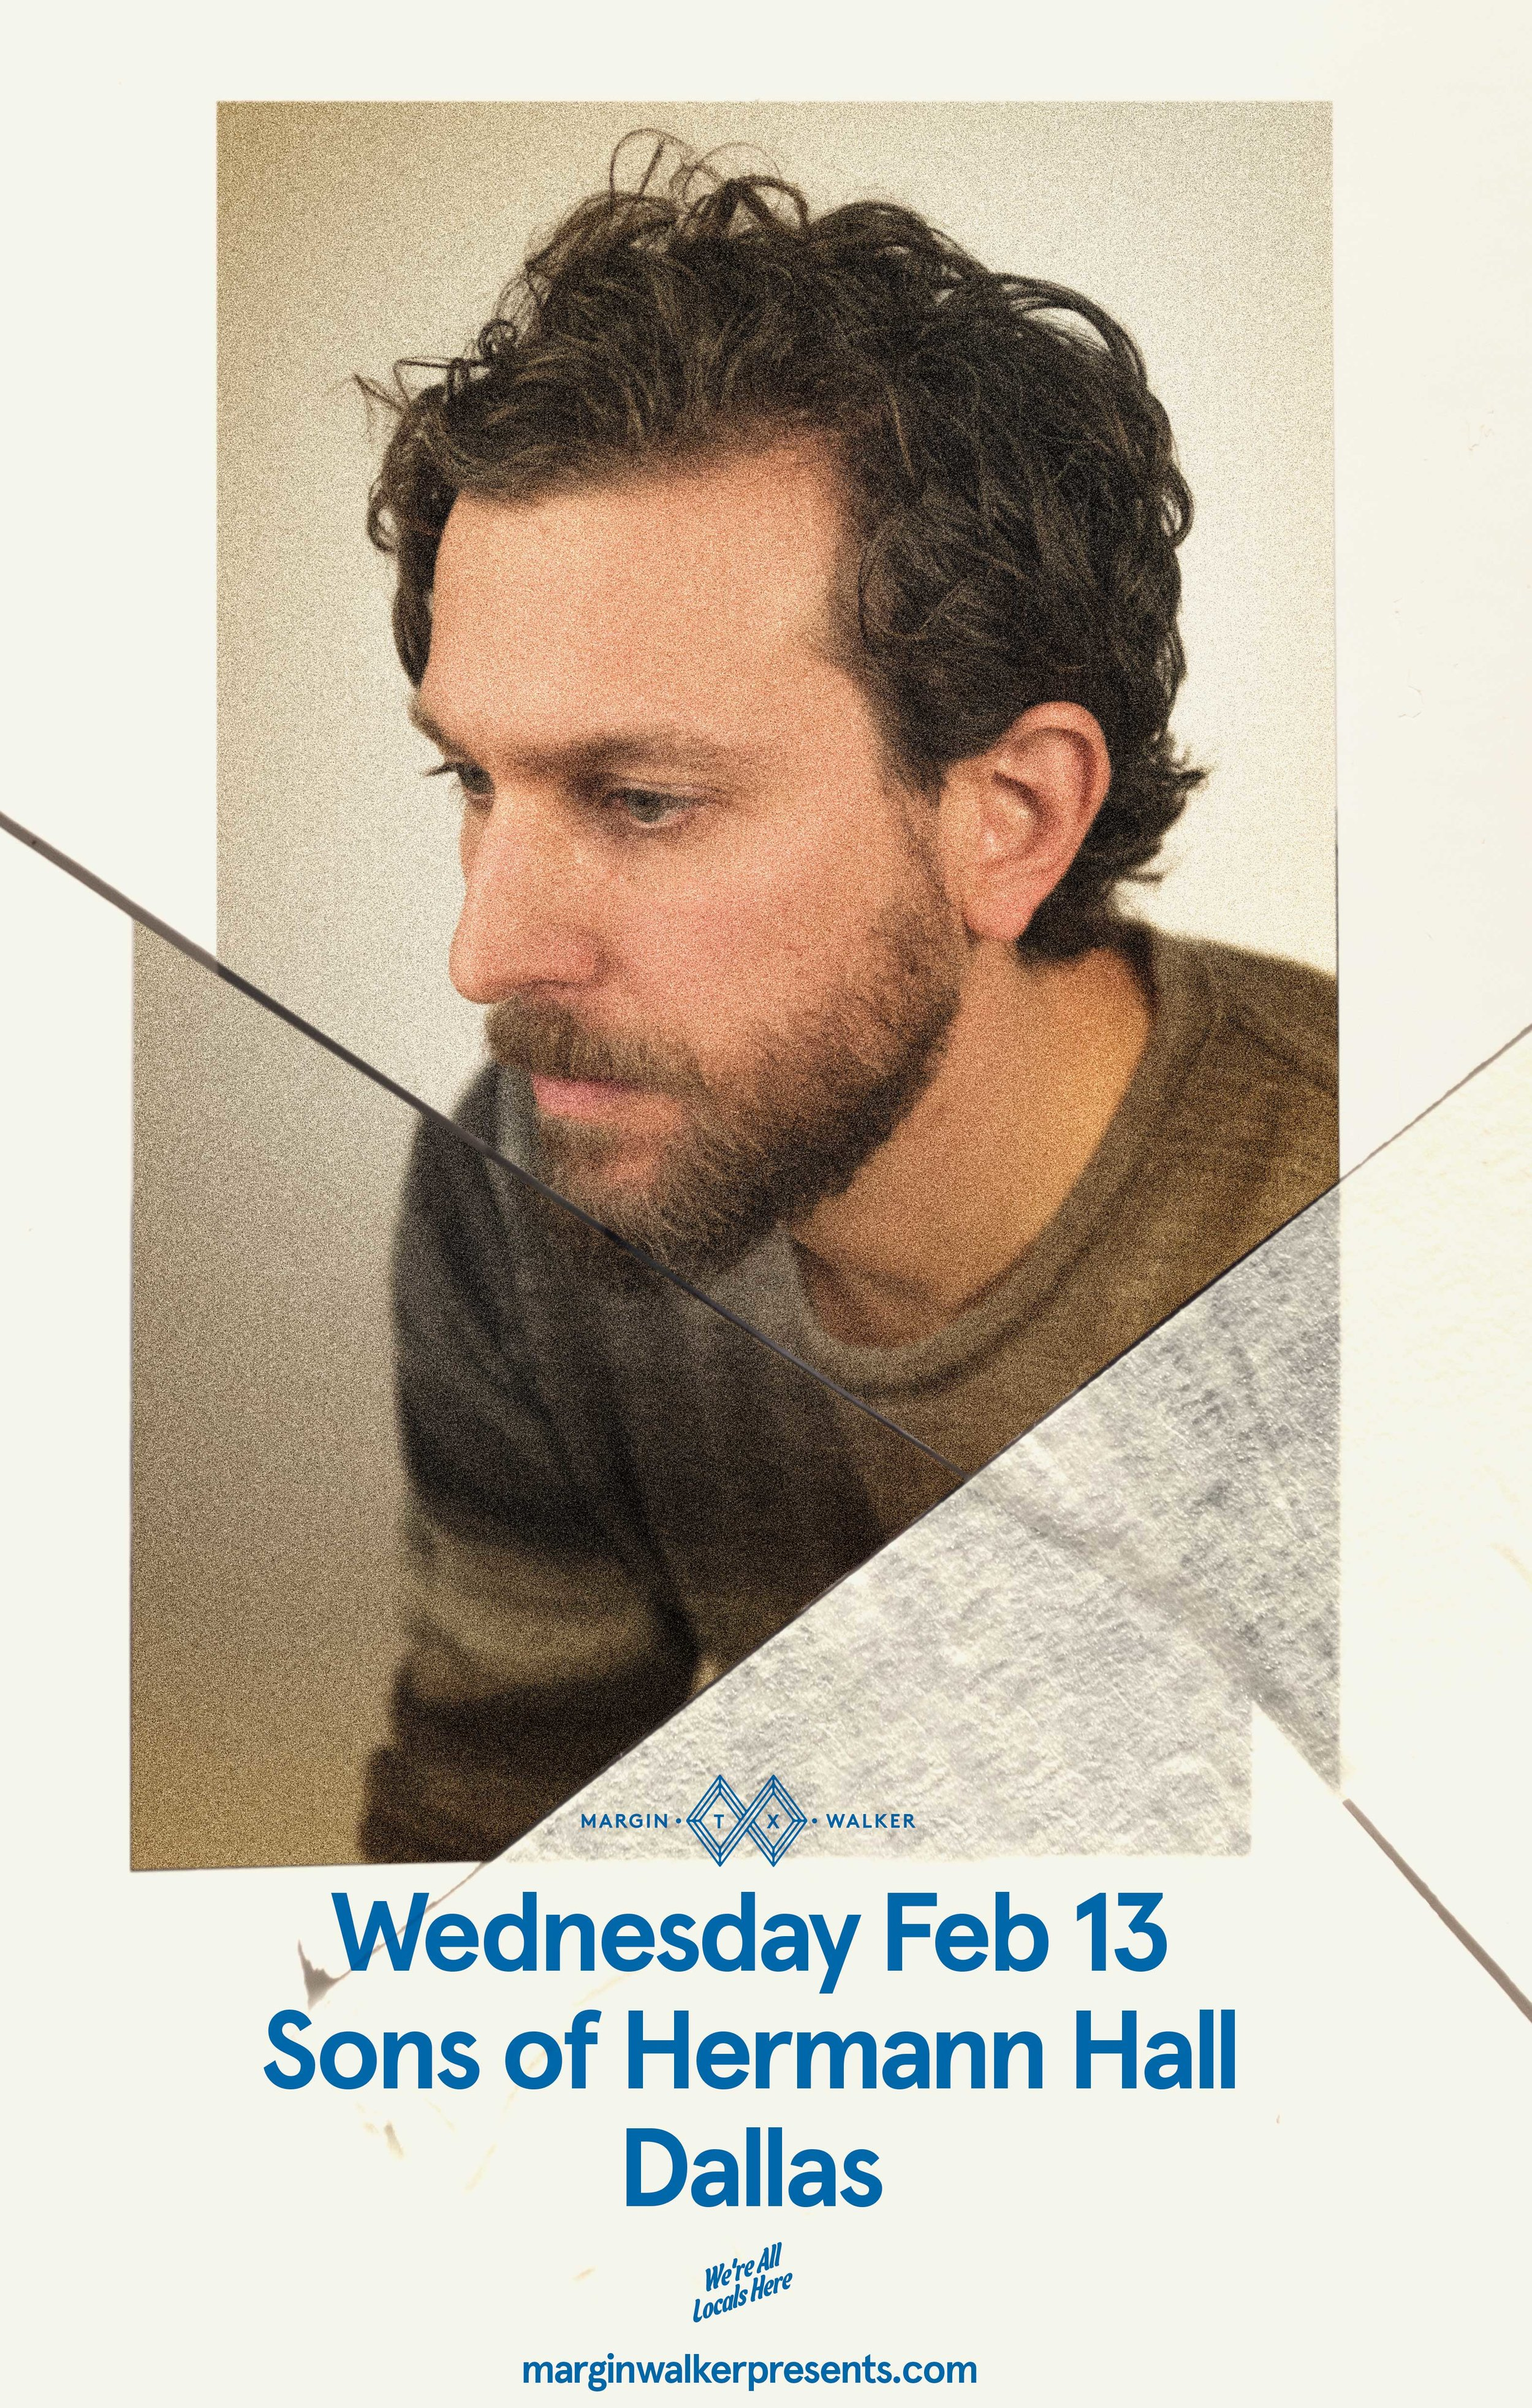 190213_greatlakeswimmers_sonsofhermannhall_lowres.jpg